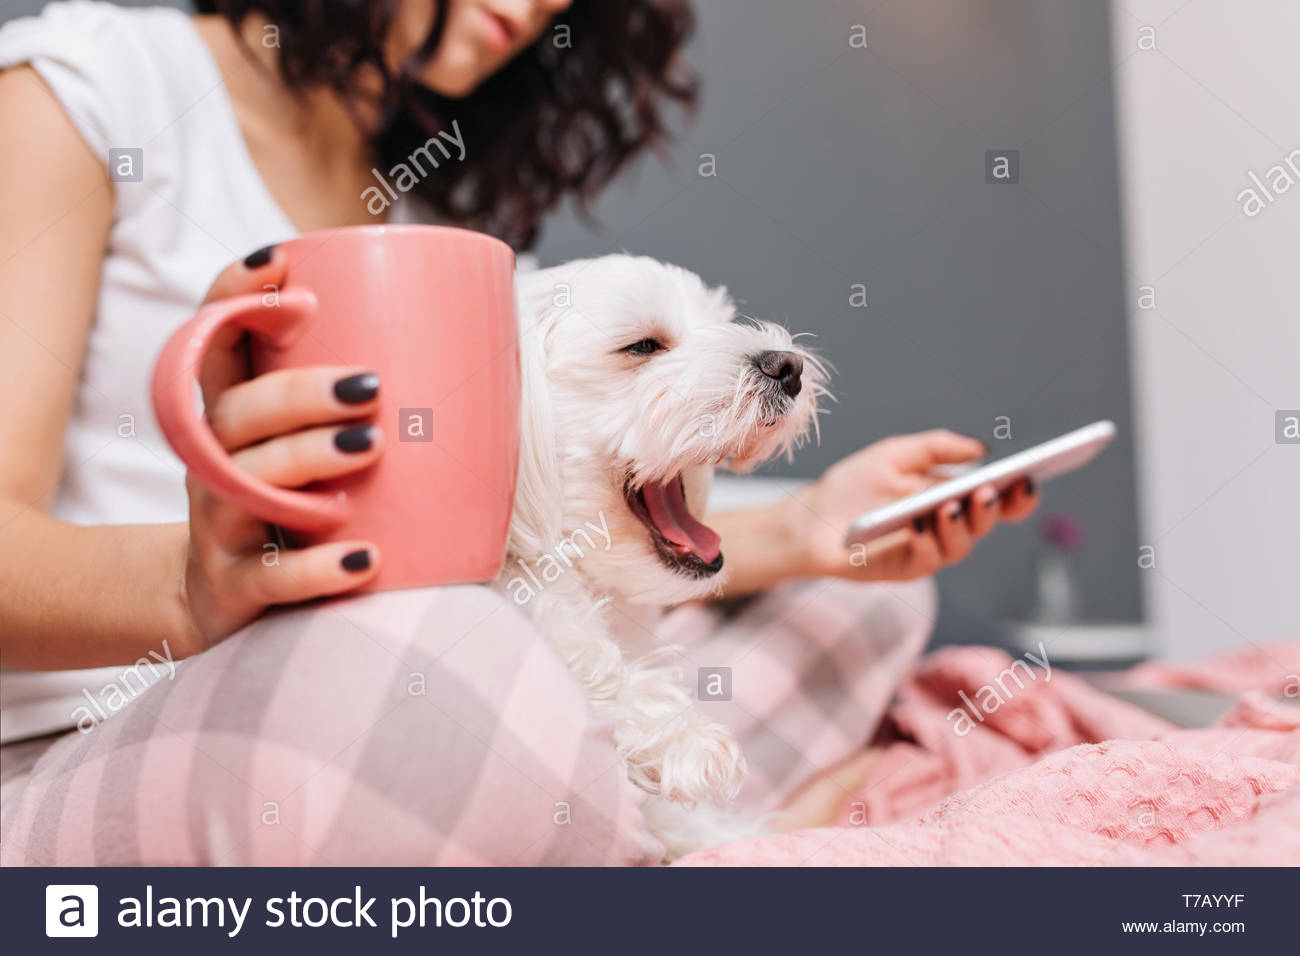 Sweet little white dog yawning on knees young woman in pajama chilling on bed with a cup of tee. Enjoying home comfort with pets, cheerful mood - Stock Image